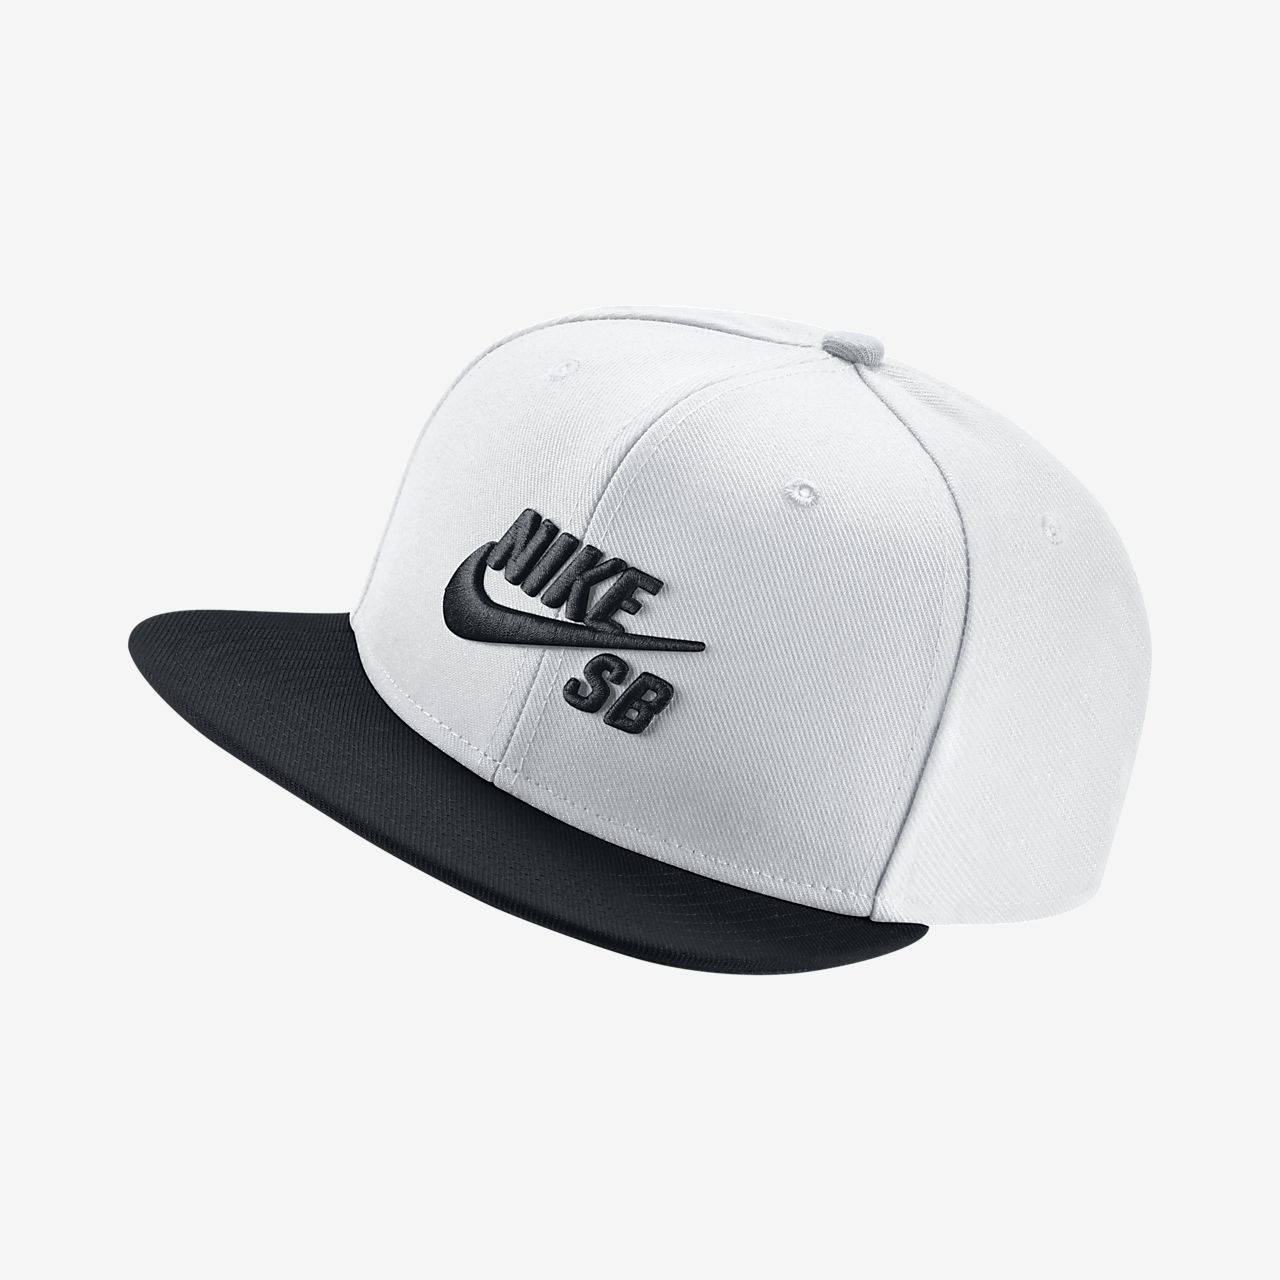 416eb8e9 Nike SB Icon Adjustable Hat. Nike.com CA